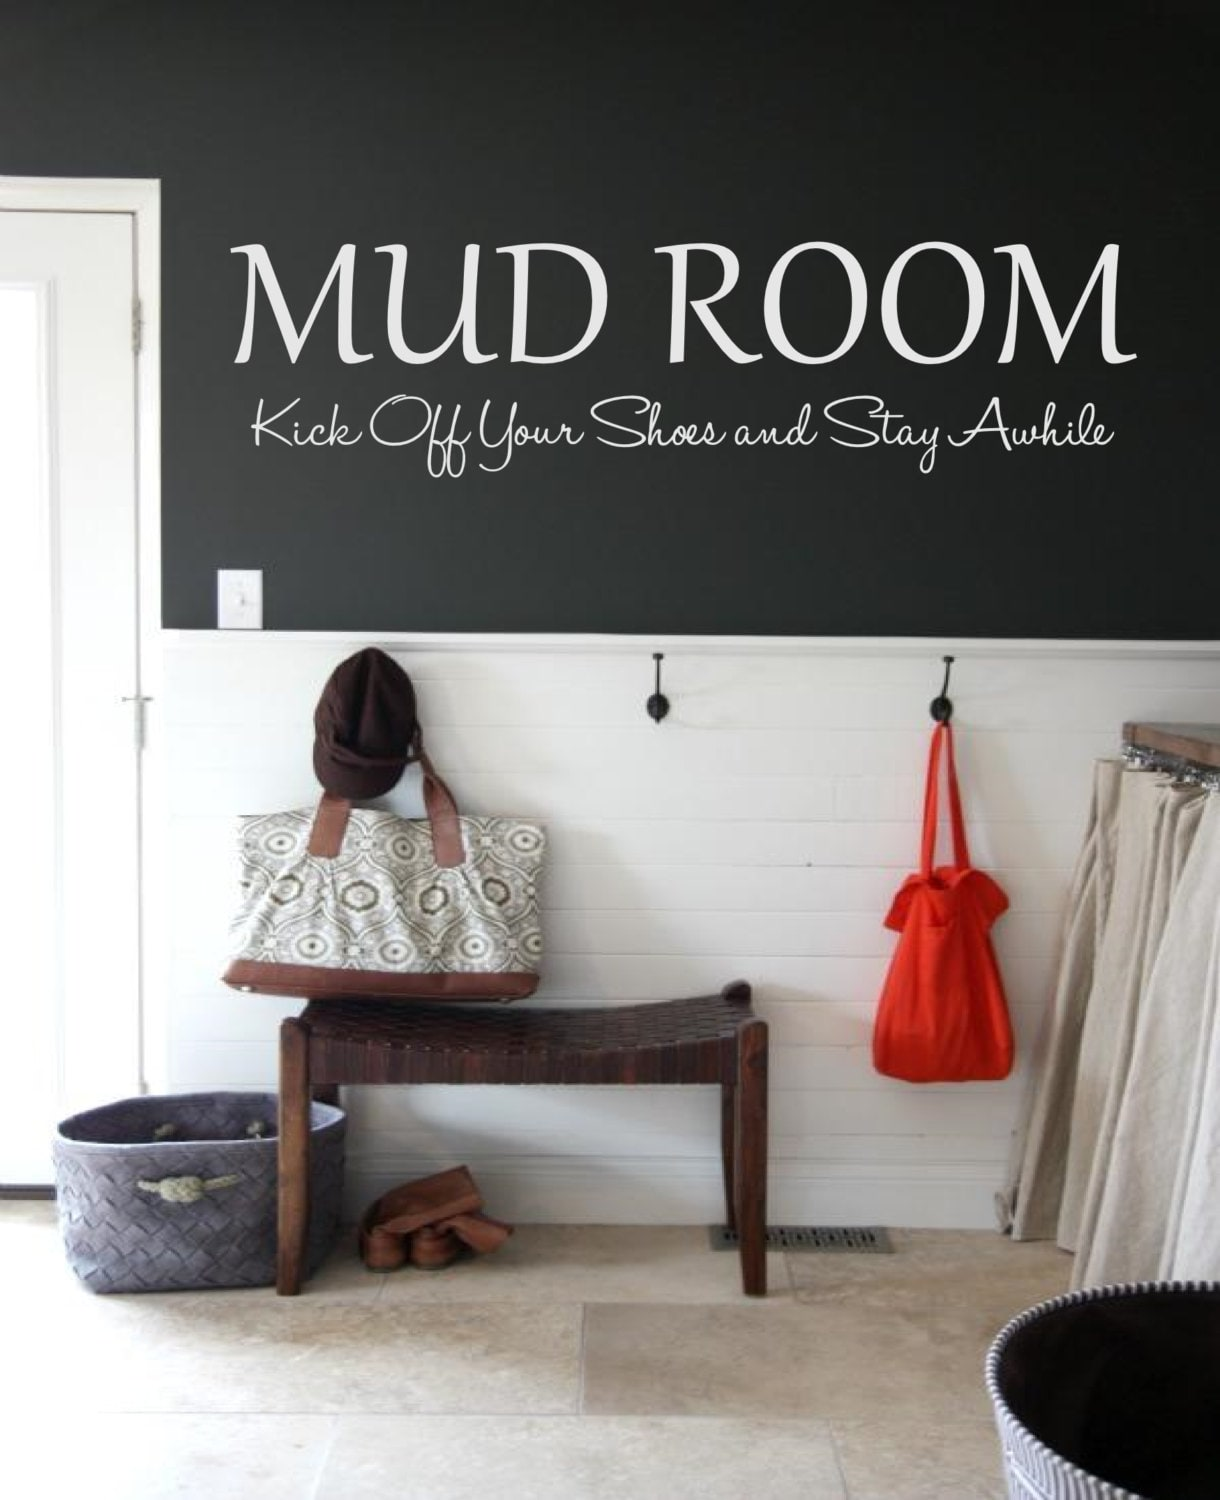 Mud Room Wall Decor : Mud room kick off your shoes and stay awhile wall